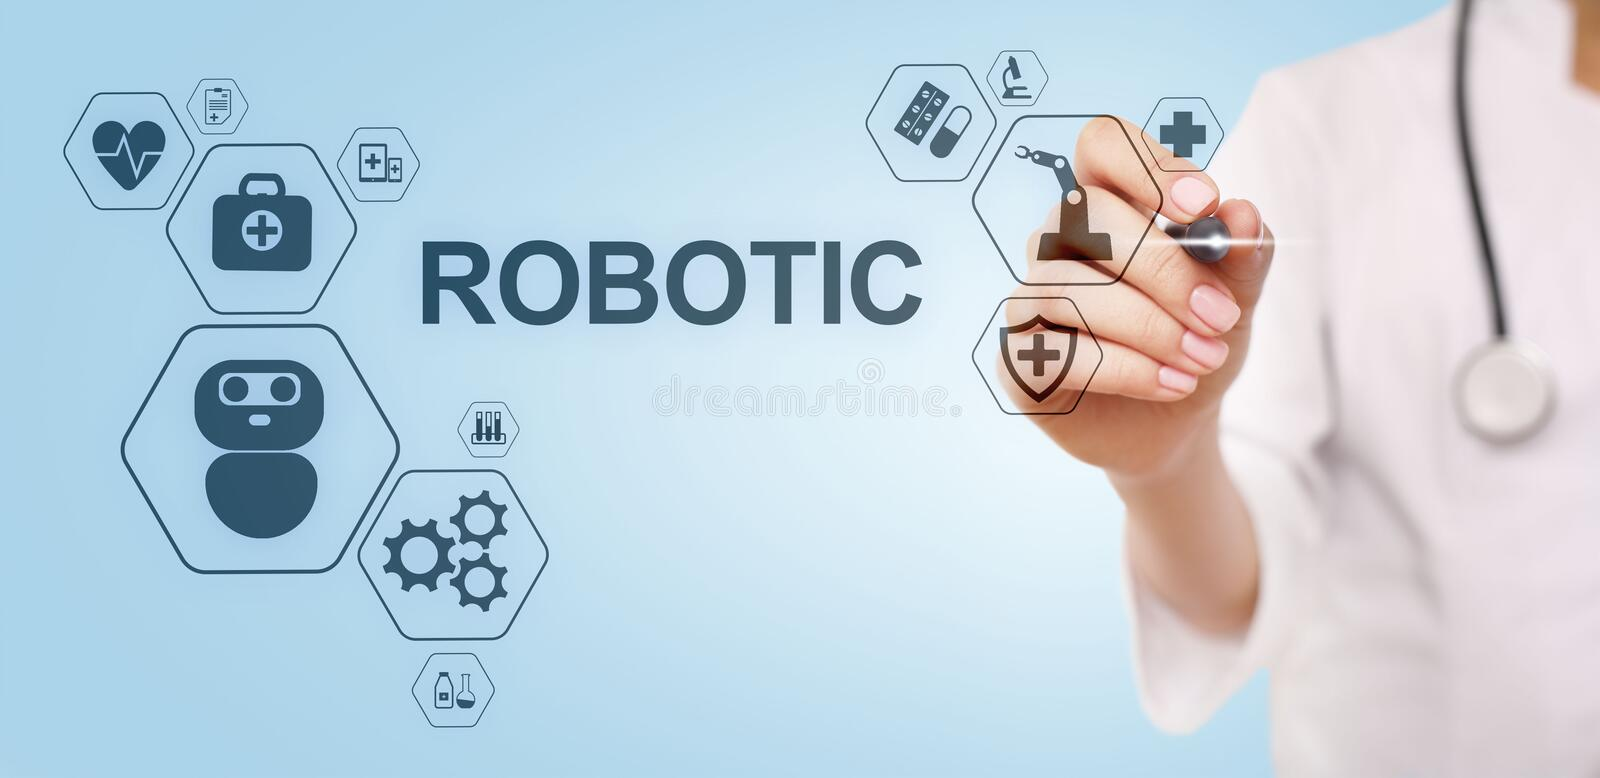 Medical robot rpa automation modern technology in medicine concept. Medical robot rpa automation modern technology in medicine concept stock photography